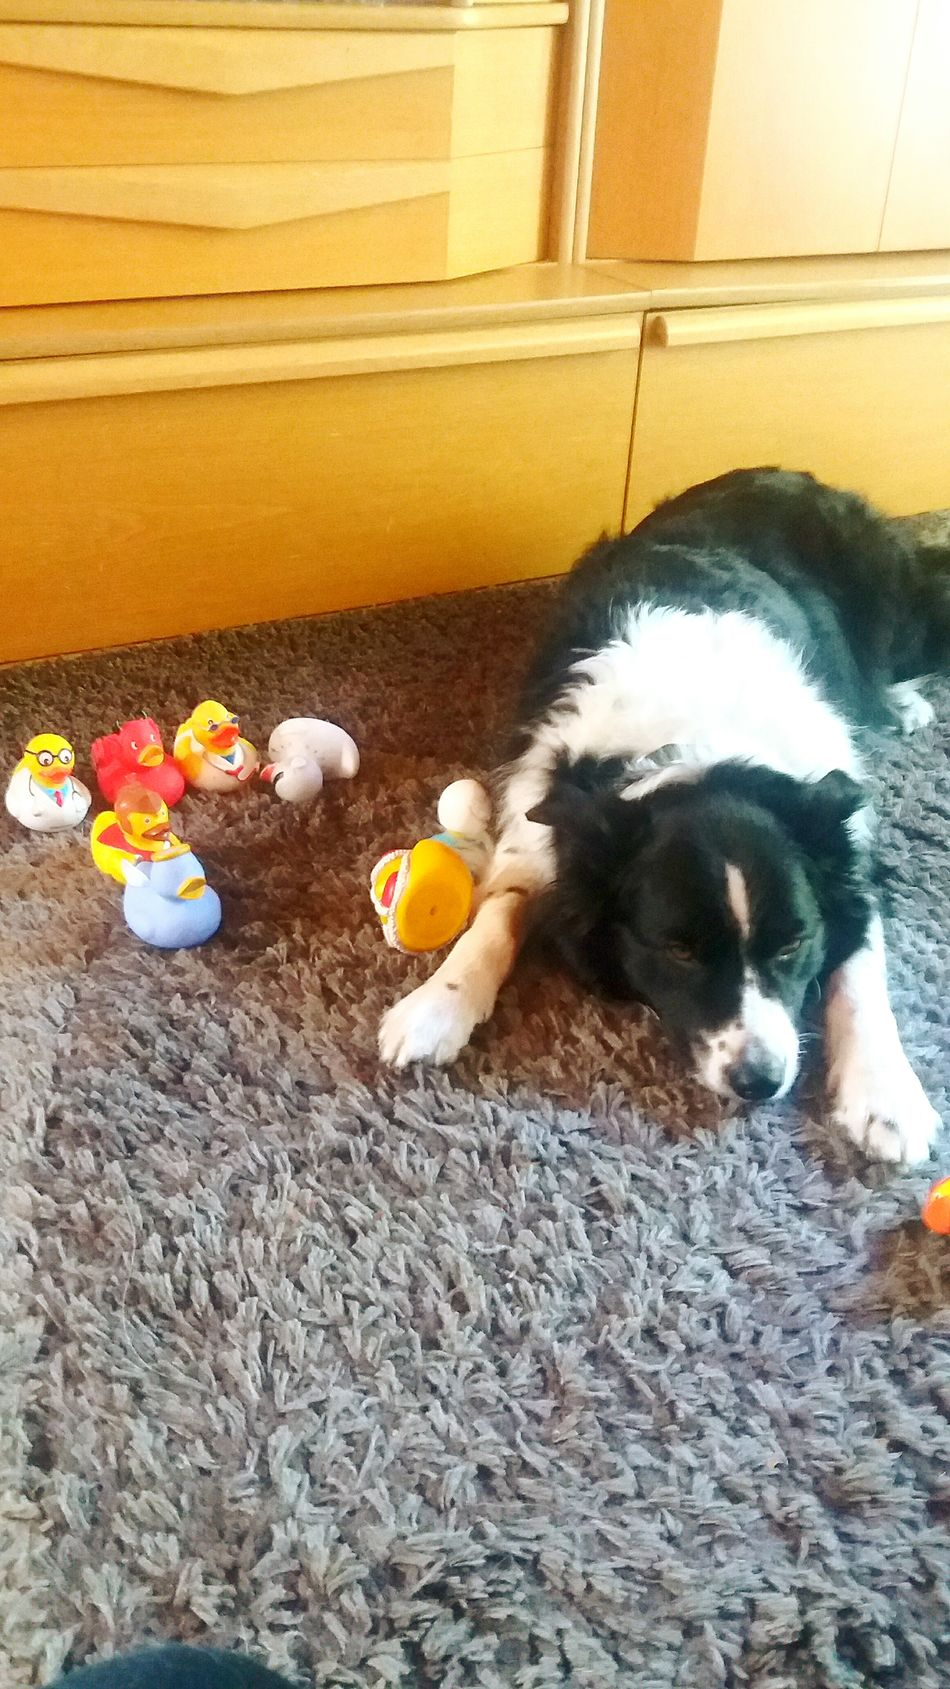 Womit soll ich nur spielen? Ich habe zu viel zur Auswahl Animal Themes Domestic Animals Pets Mammal One Animal High Angle View Indoors  Togetherness Day No People Animal Zoology Playing Photography Photographer Photoshoot Sleeping Pet Photography  Pet Border Collie Australienshepard Bordercollie